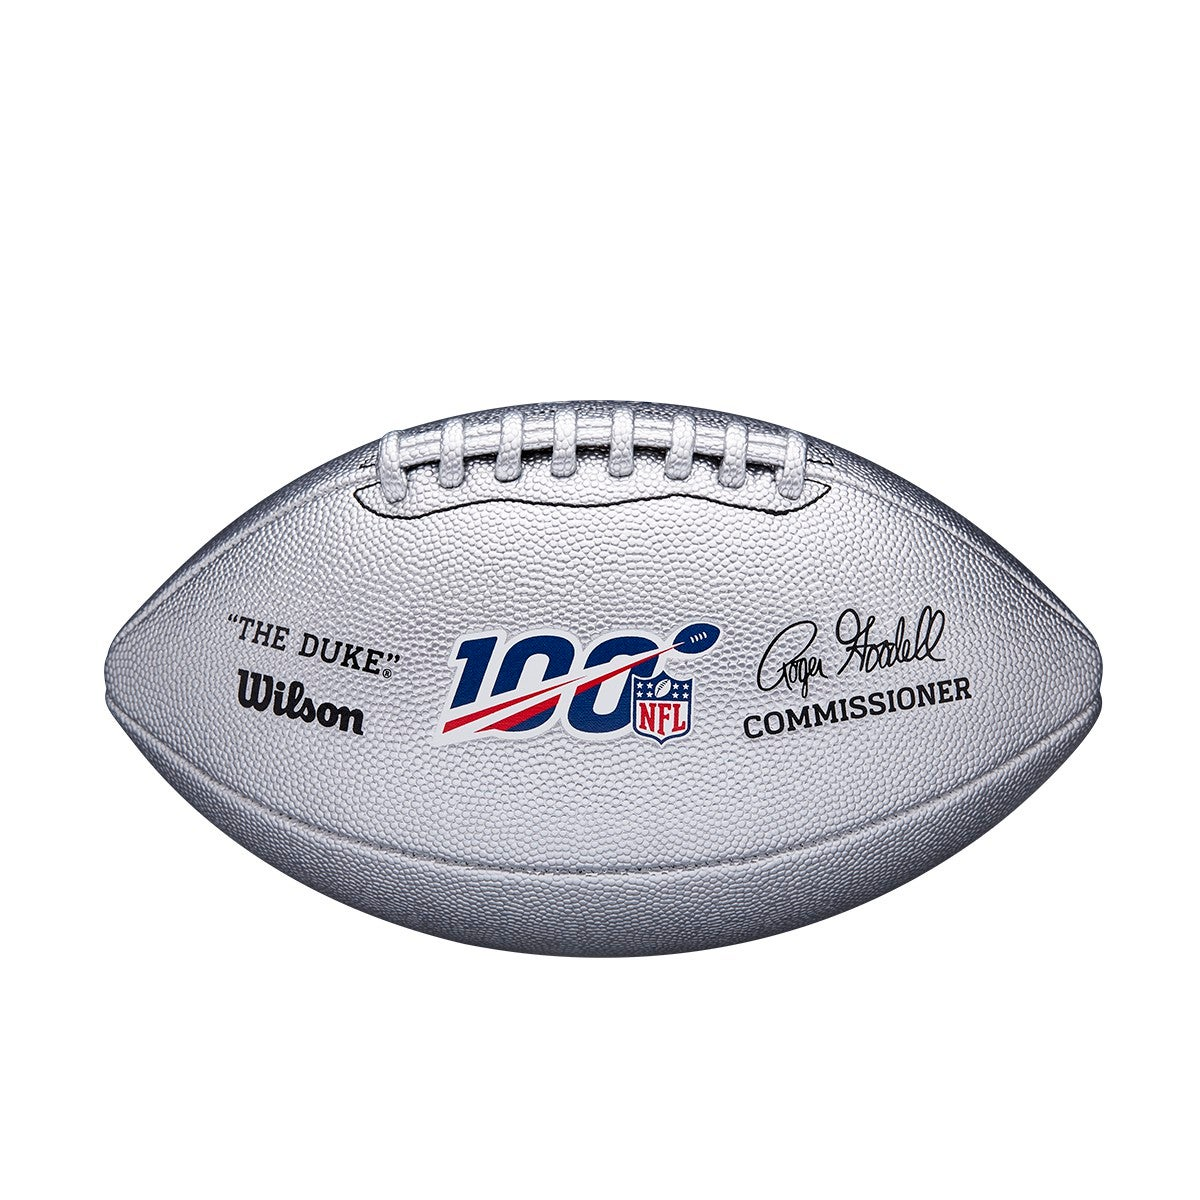 NFL 100 The Duke Metallic Football